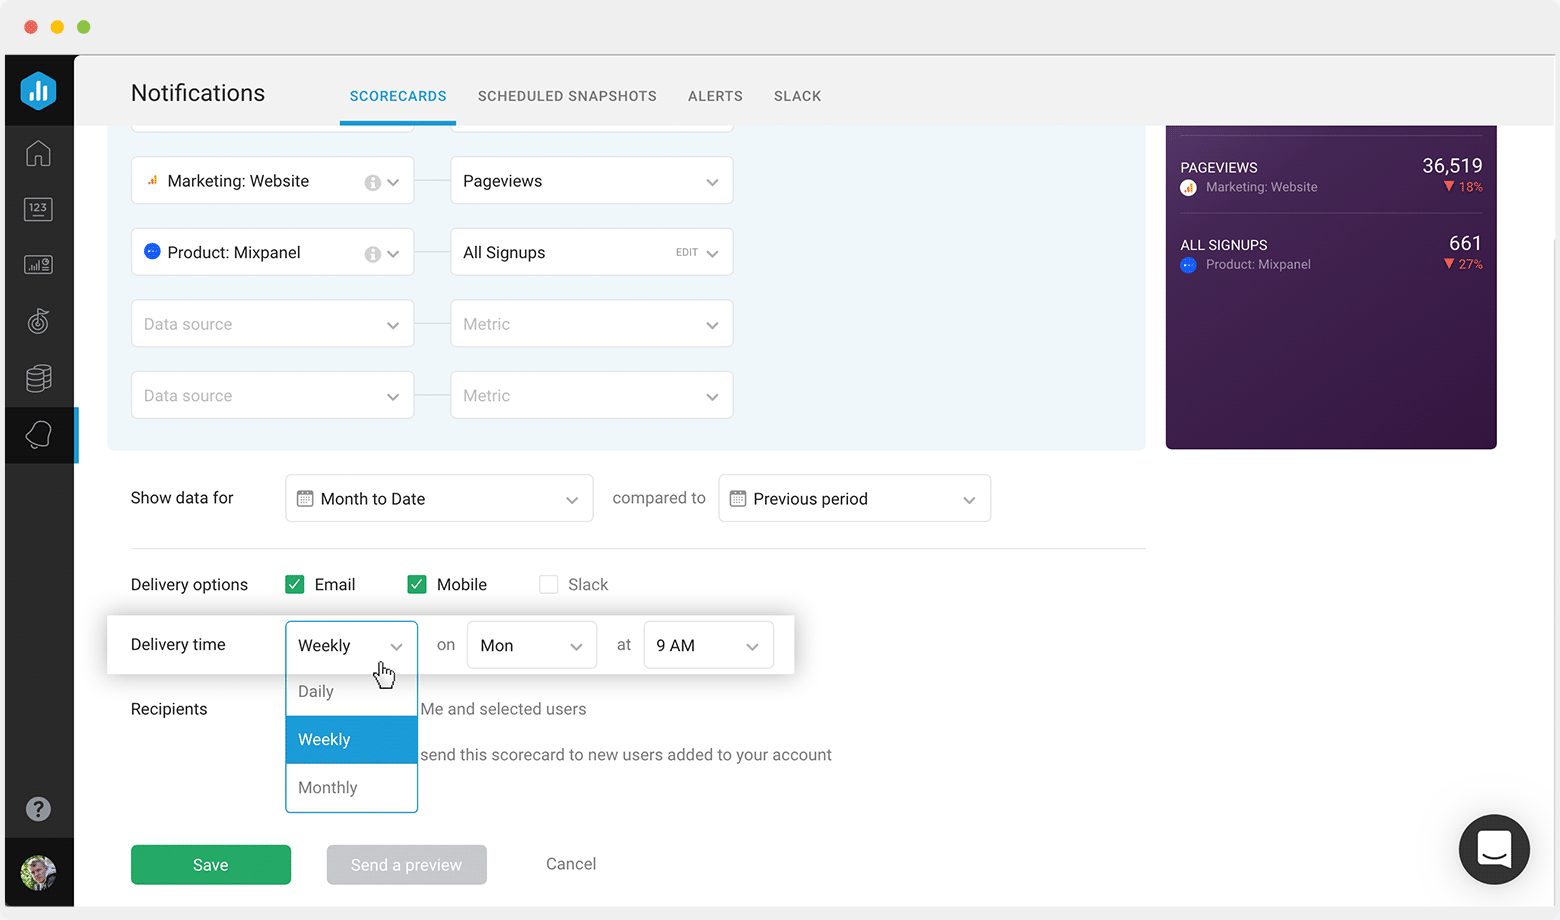 Choose a delivery time and delivery option—email, Slack, or mobile.